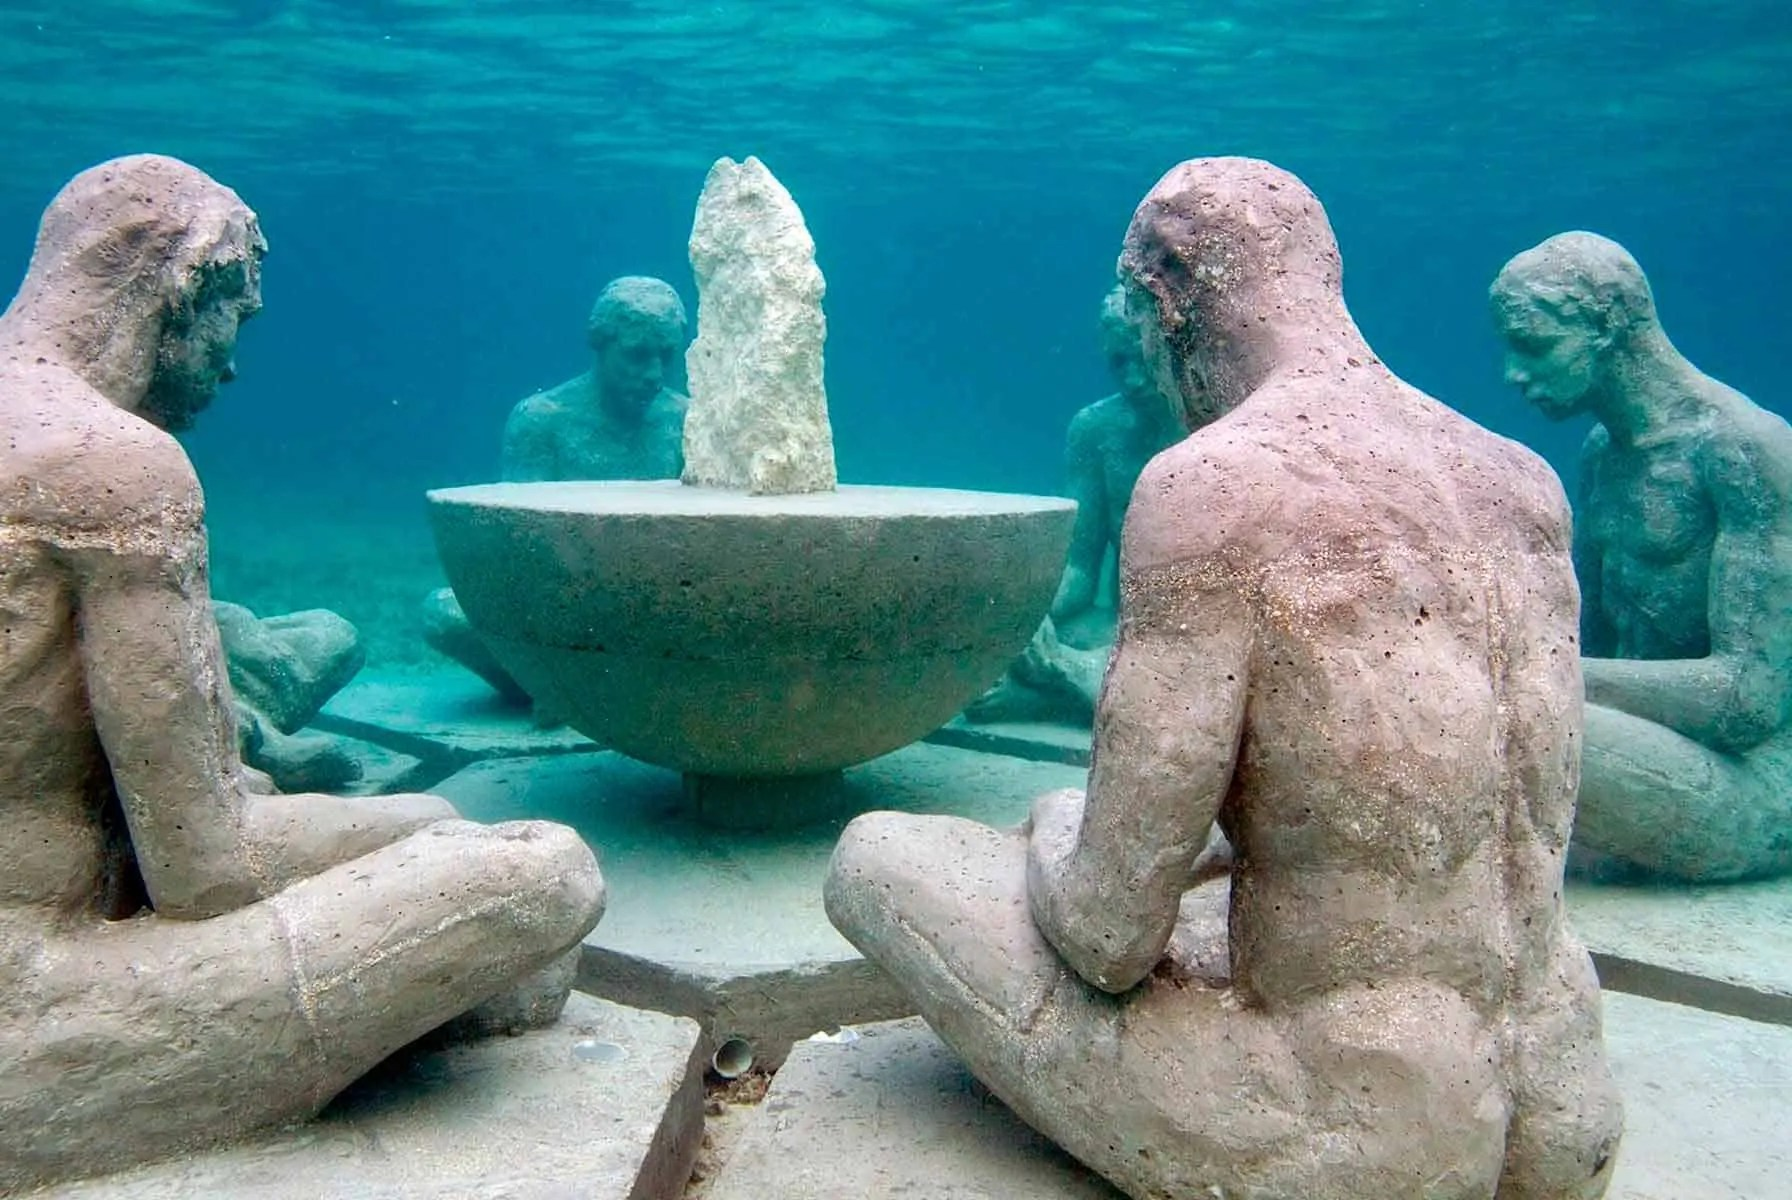 sculpture of seated men in a circle underwater